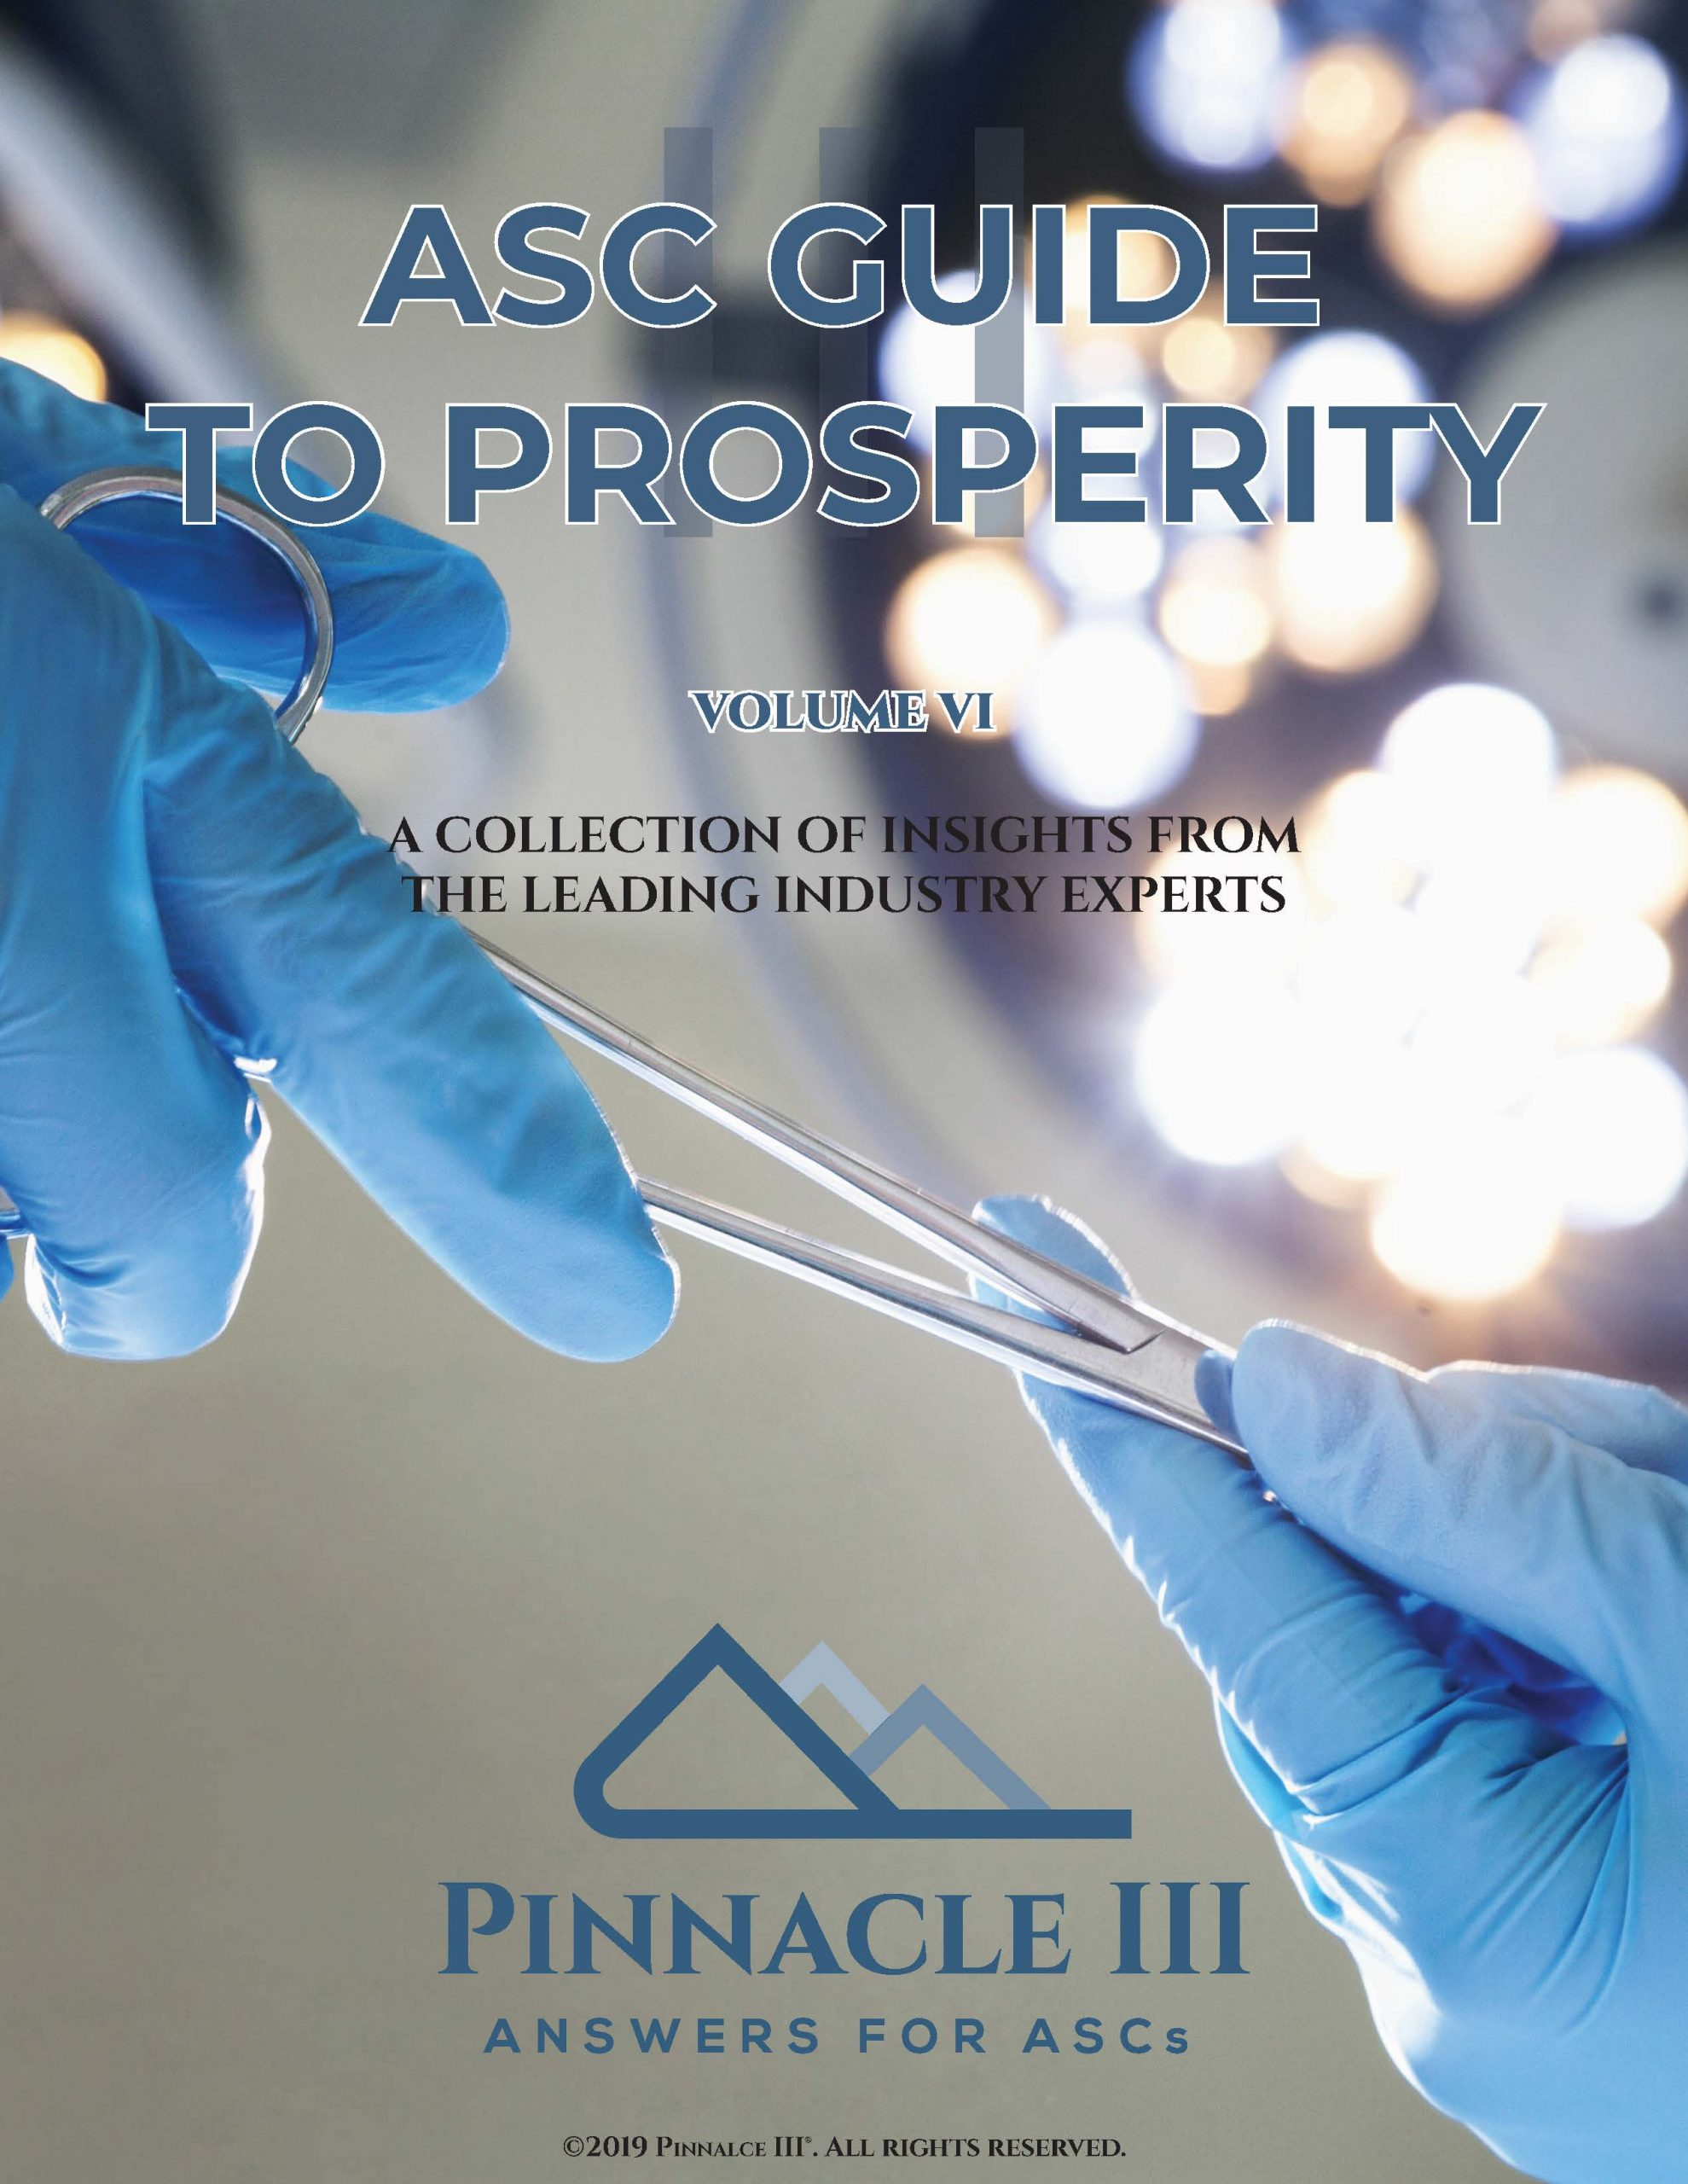 Front cover of the ASC Guide to Prosperity Magazine Vol. 6